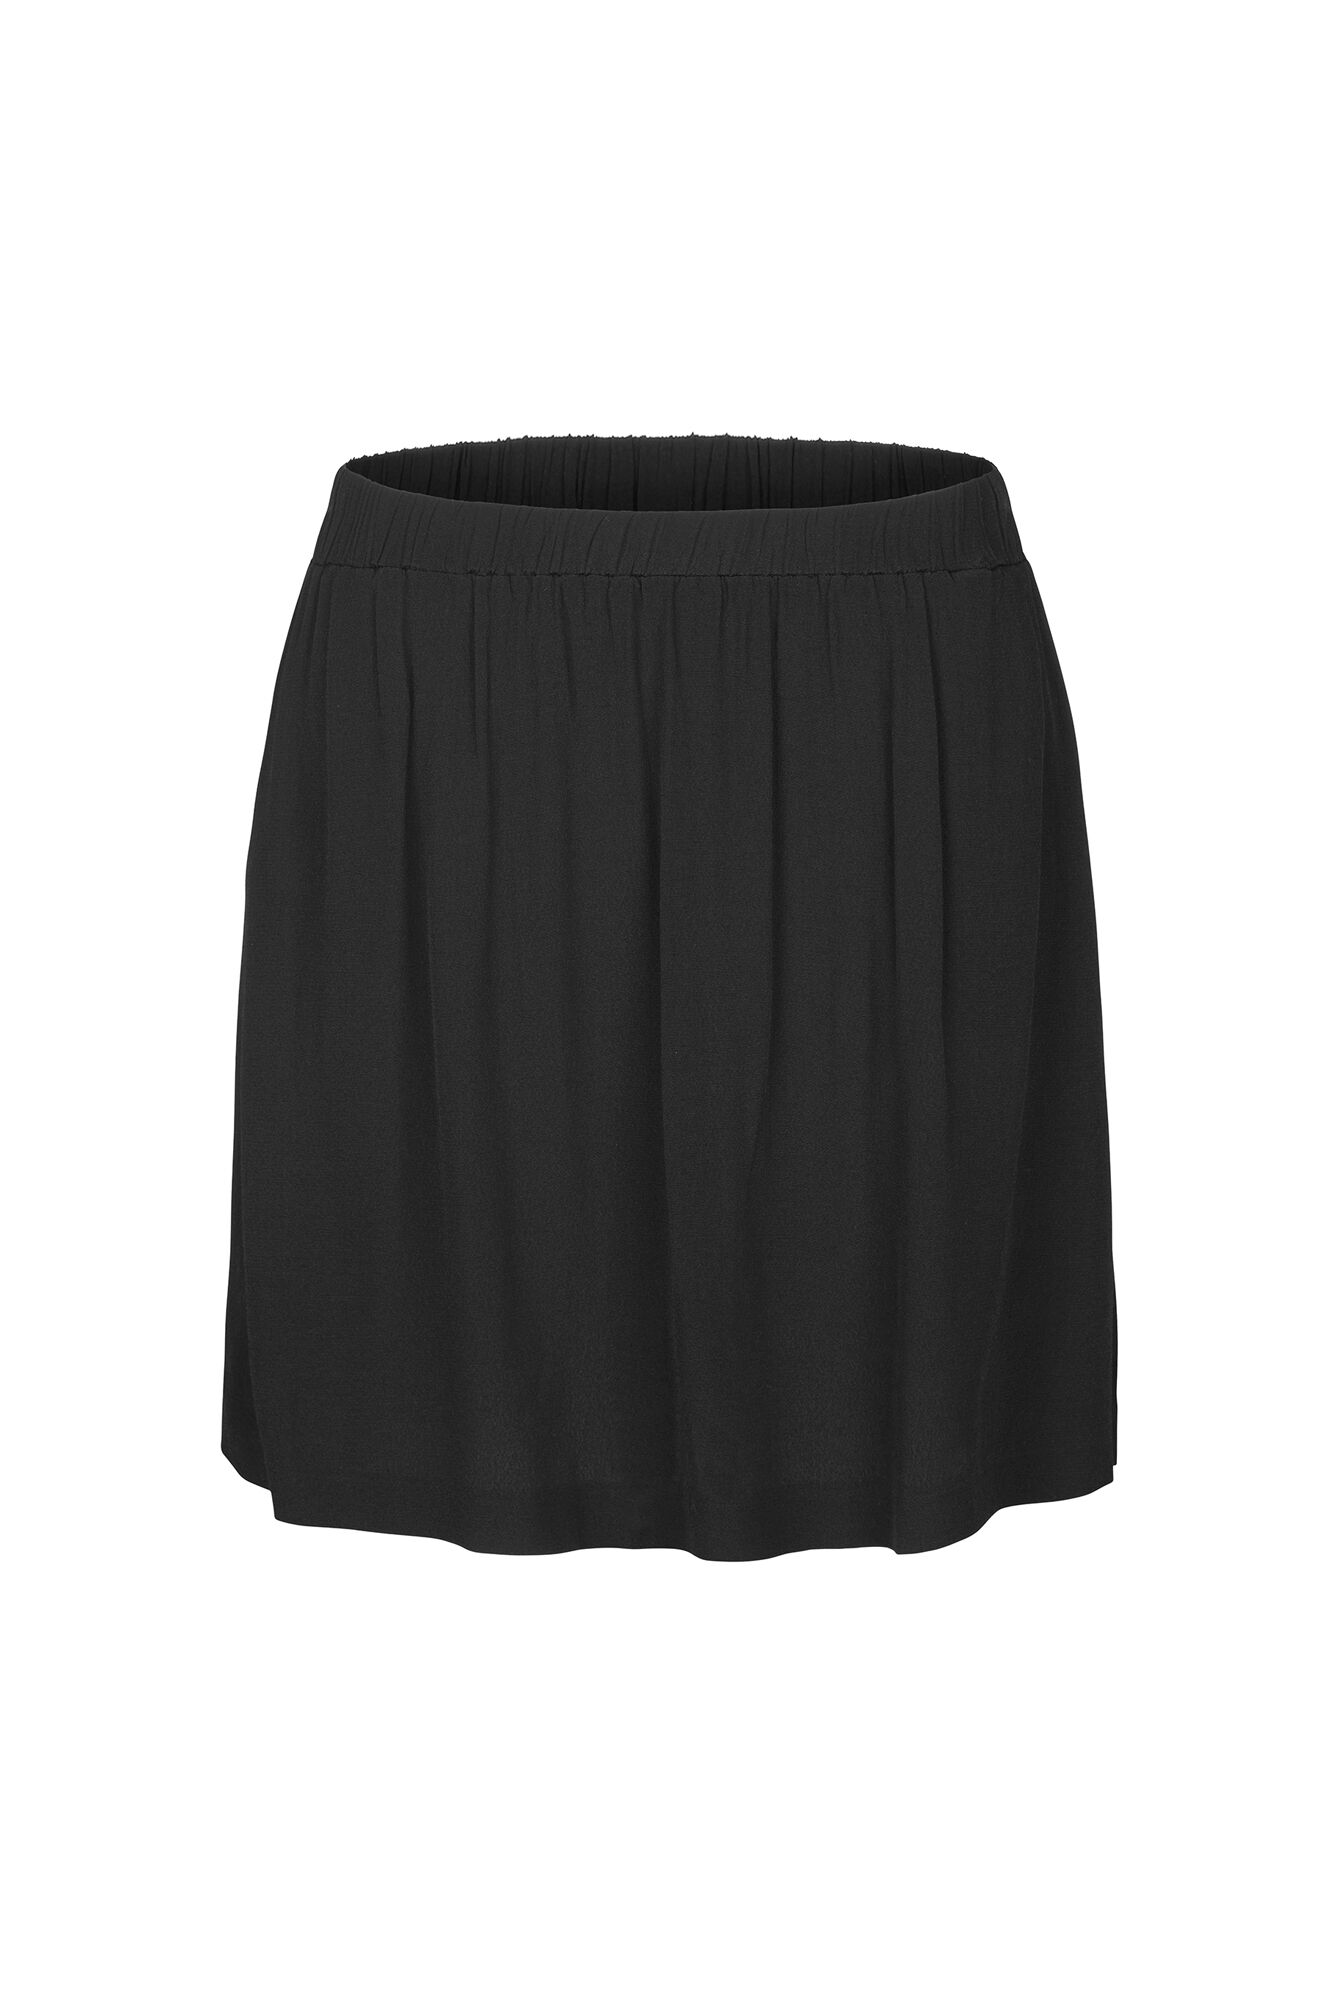 ENJUSTICE SKIRT 6257, BLACK